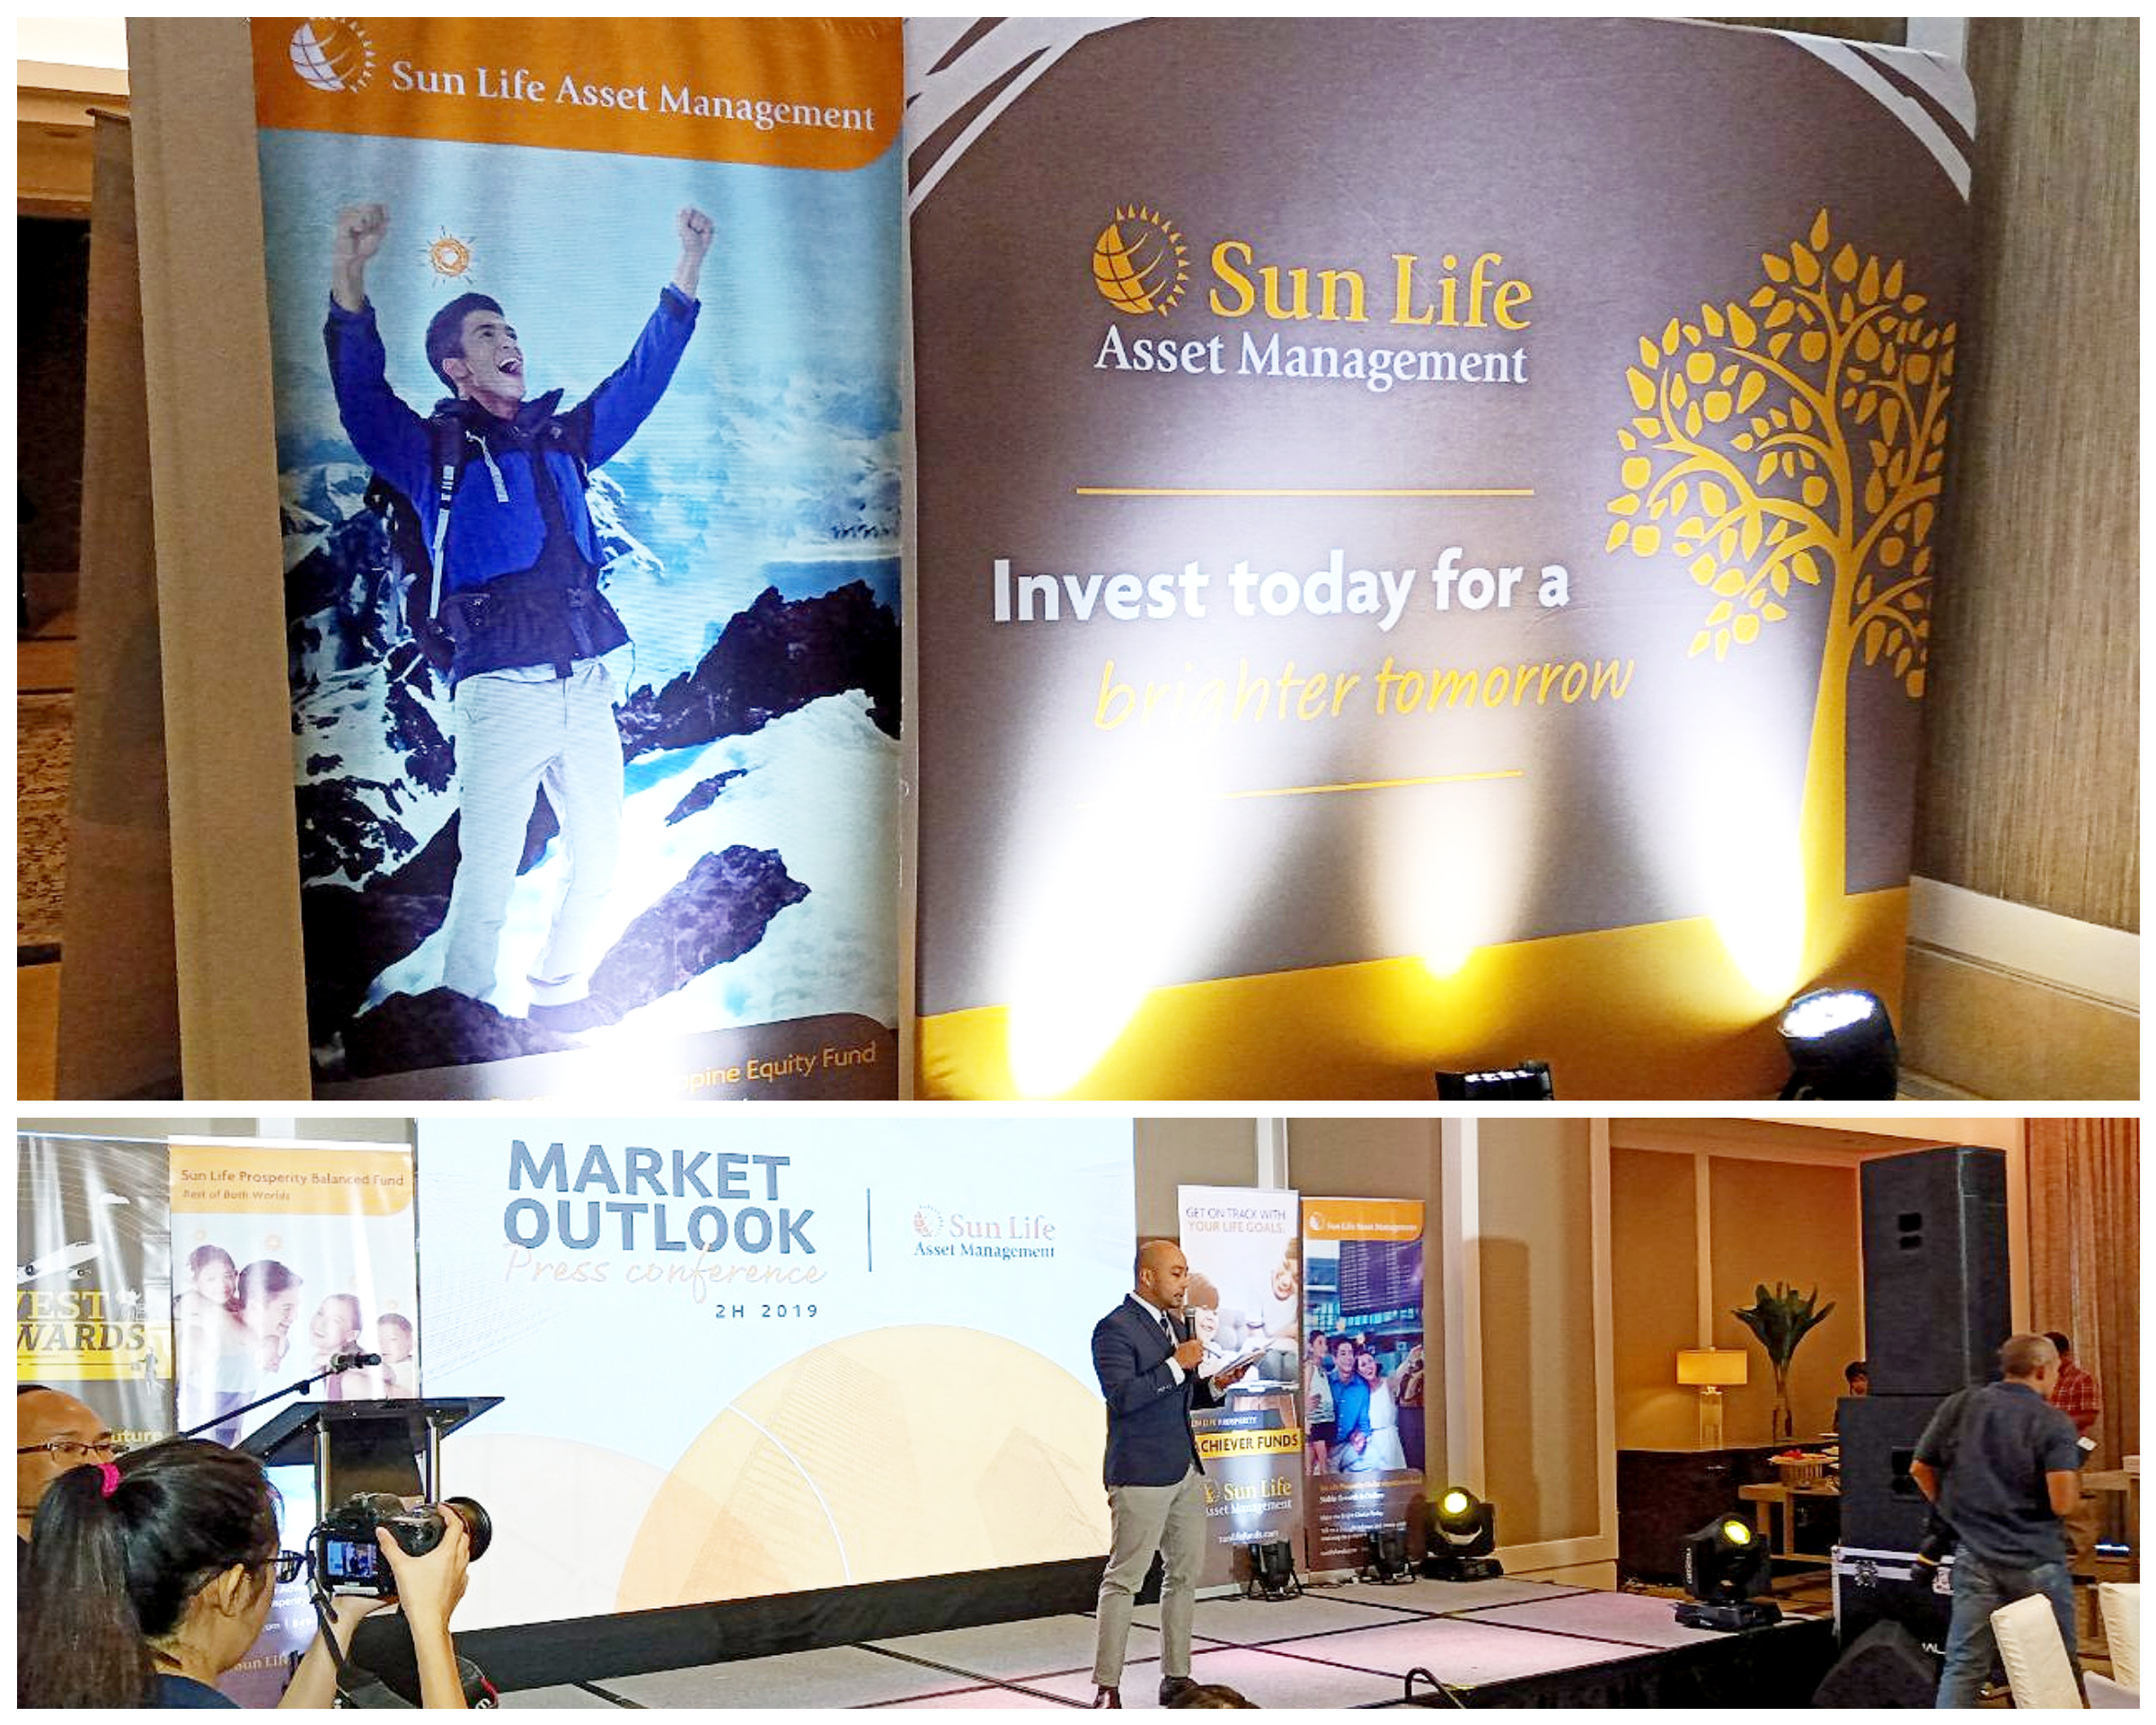 sunlife event